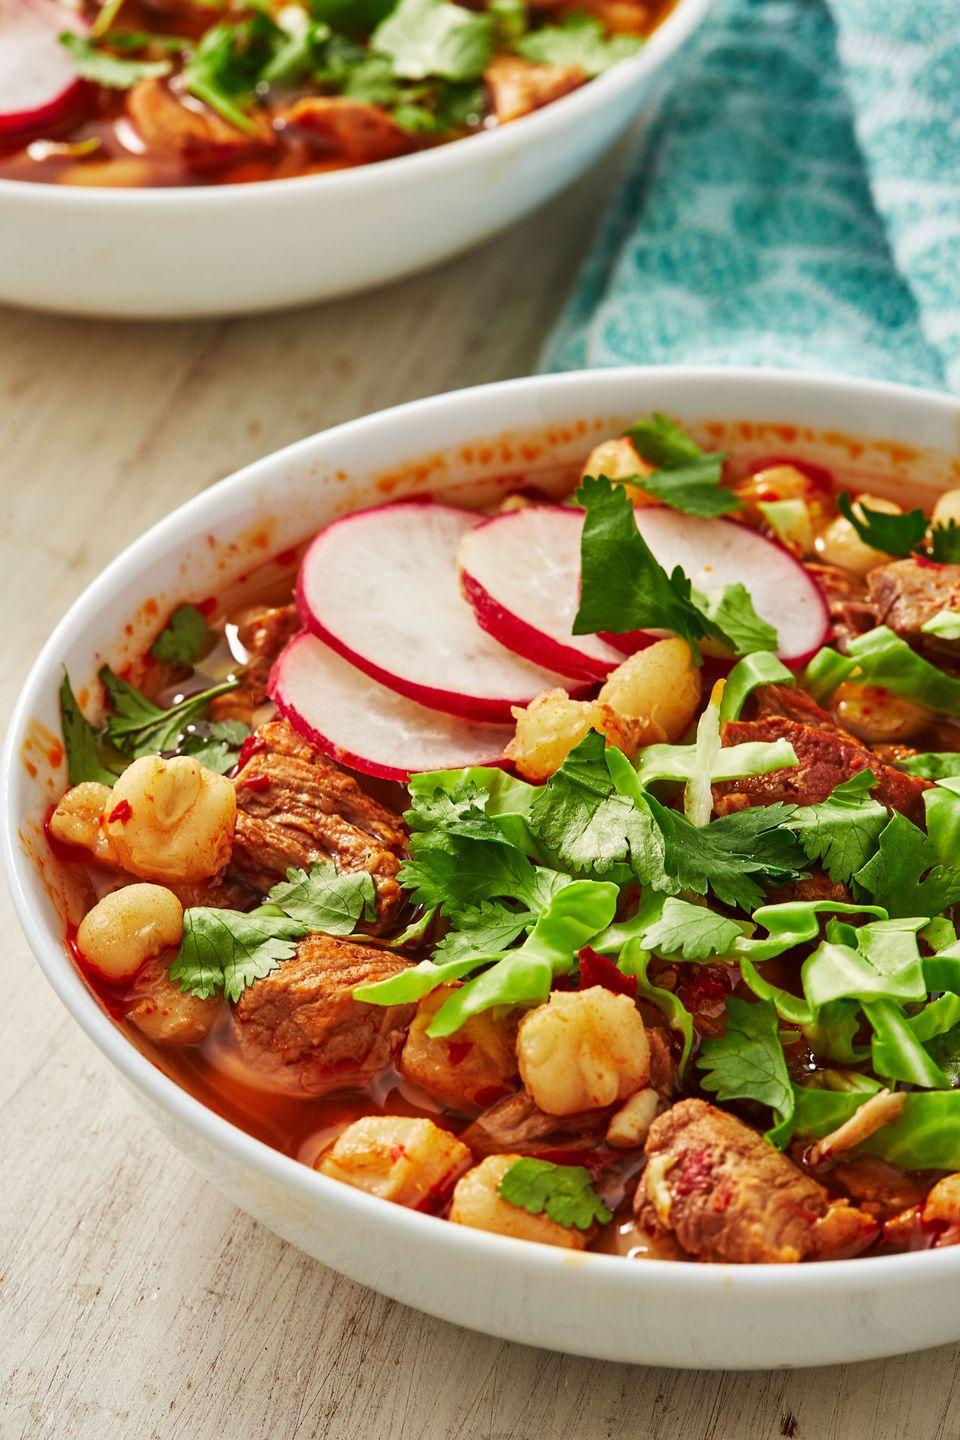 "<p>This beauty will warm you up ASAP.</p><p>Get the recipe from <a href=""https://www.delish.com/cooking/recipe-ideas/a30875851/pozole-recipe/"" rel=""nofollow noopener"" target=""_blank"" data-ylk=""slk:Delish."" class=""link rapid-noclick-resp"">Delish.</a></p>"